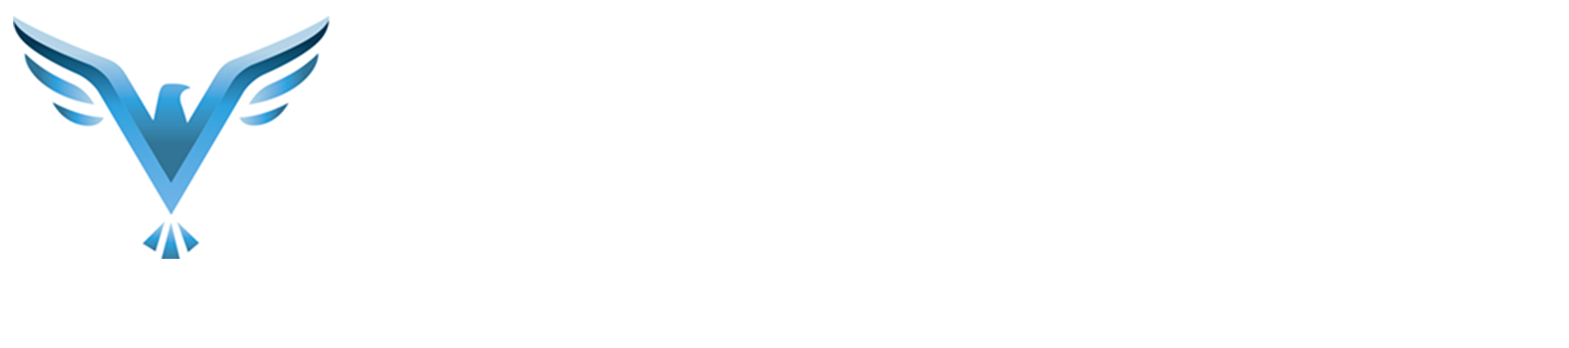 be-a-winner-heading-white-letters